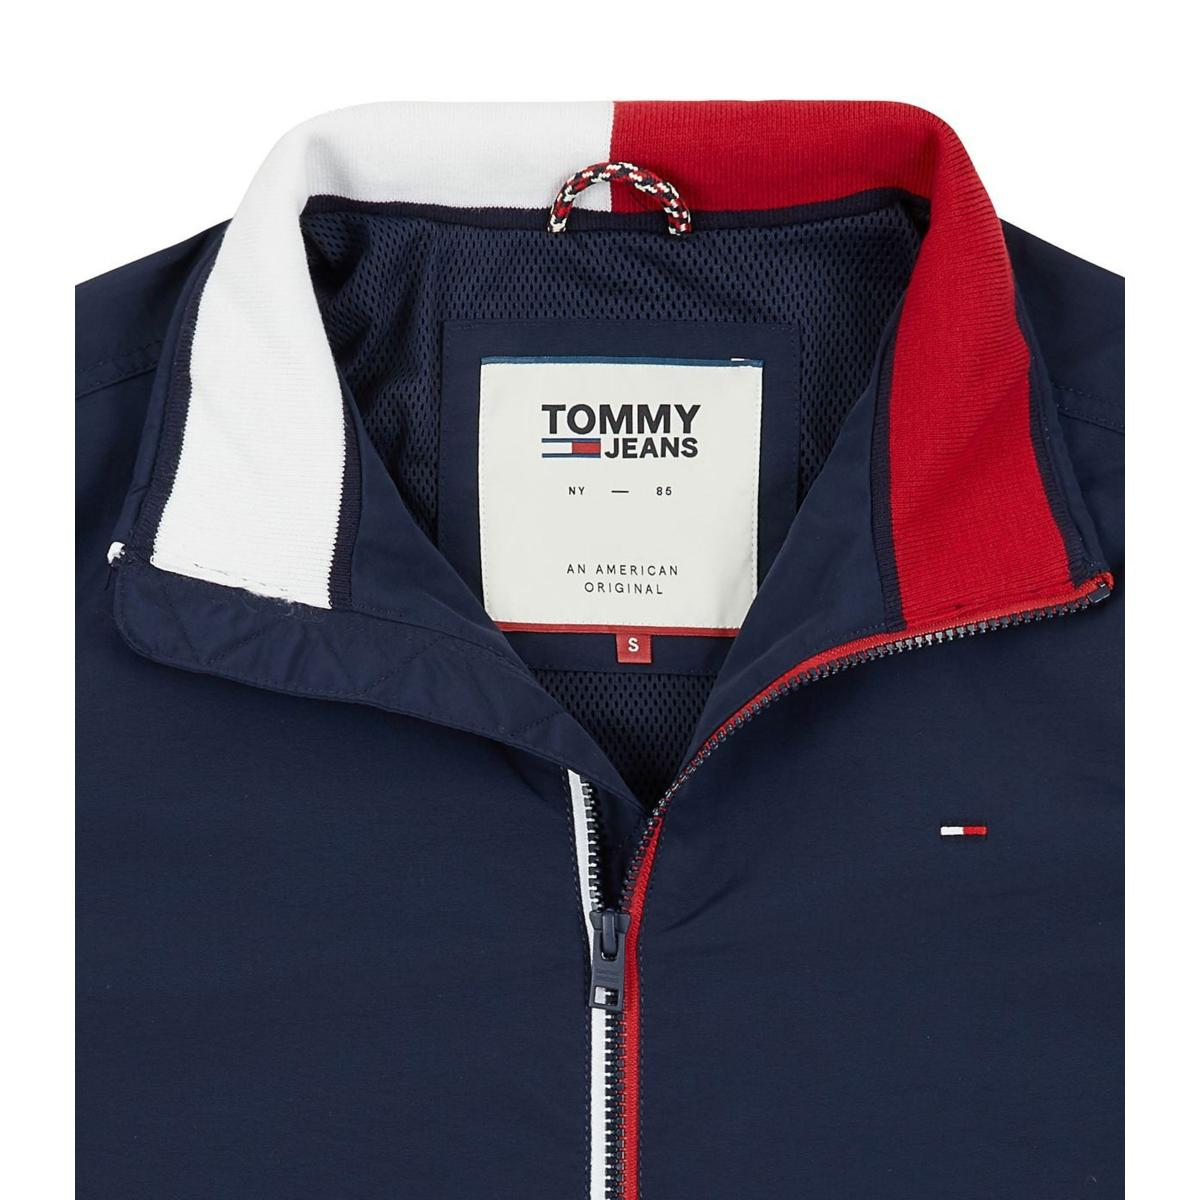 Giubbotto Tommy Jeans TJ Essential Casual Jacket da uomo rif. DM0DM05423